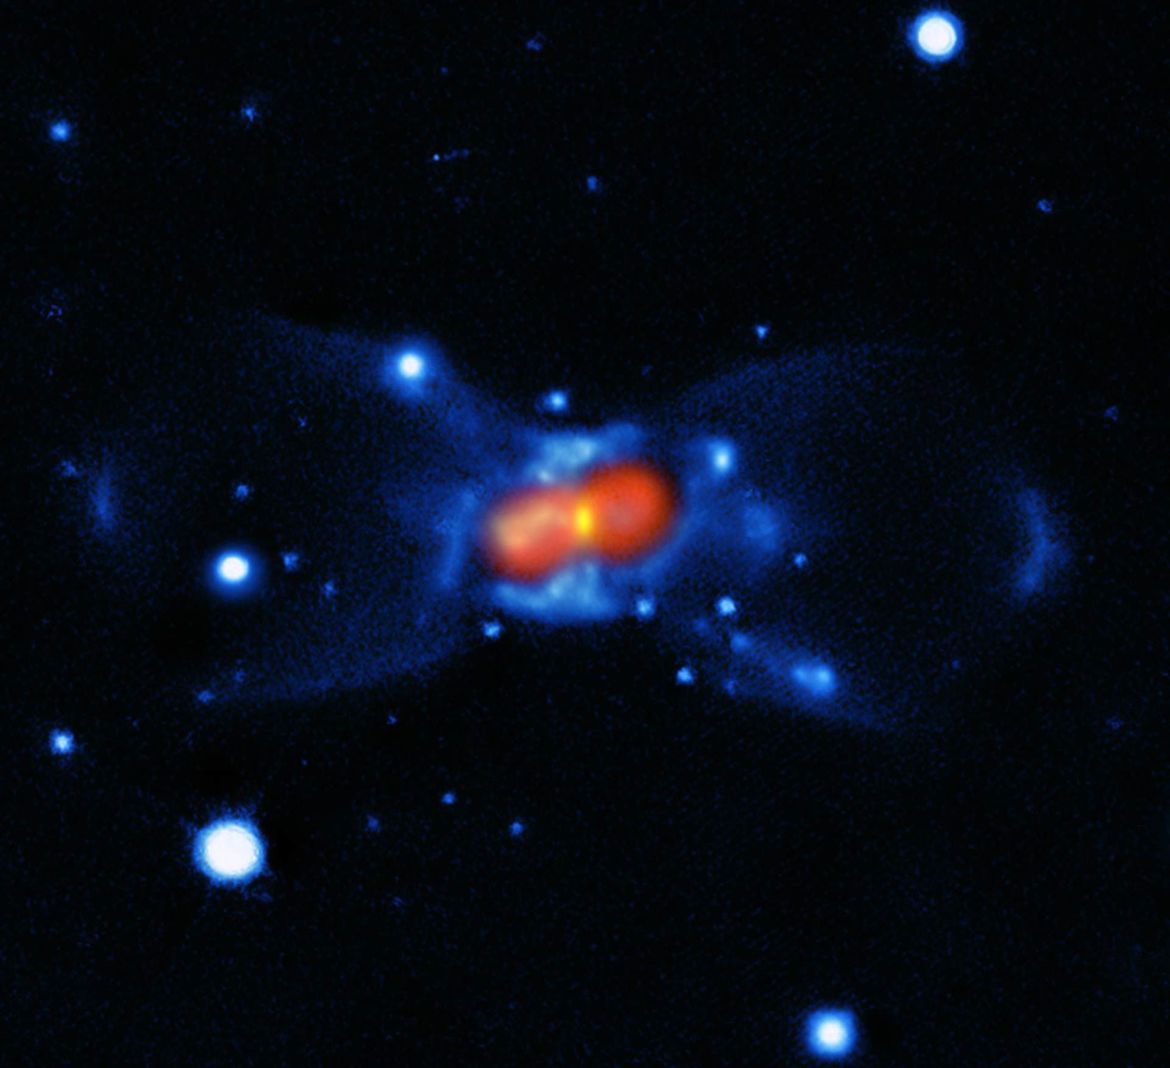 Combined visible light image from the Gemini observatory (blue) and SMA submillimeter light (red) show the complex hourglass shape of the gas and dust expanding from away from Nova Vulpeculae 1670. Credit: ESO/T. Kamiński